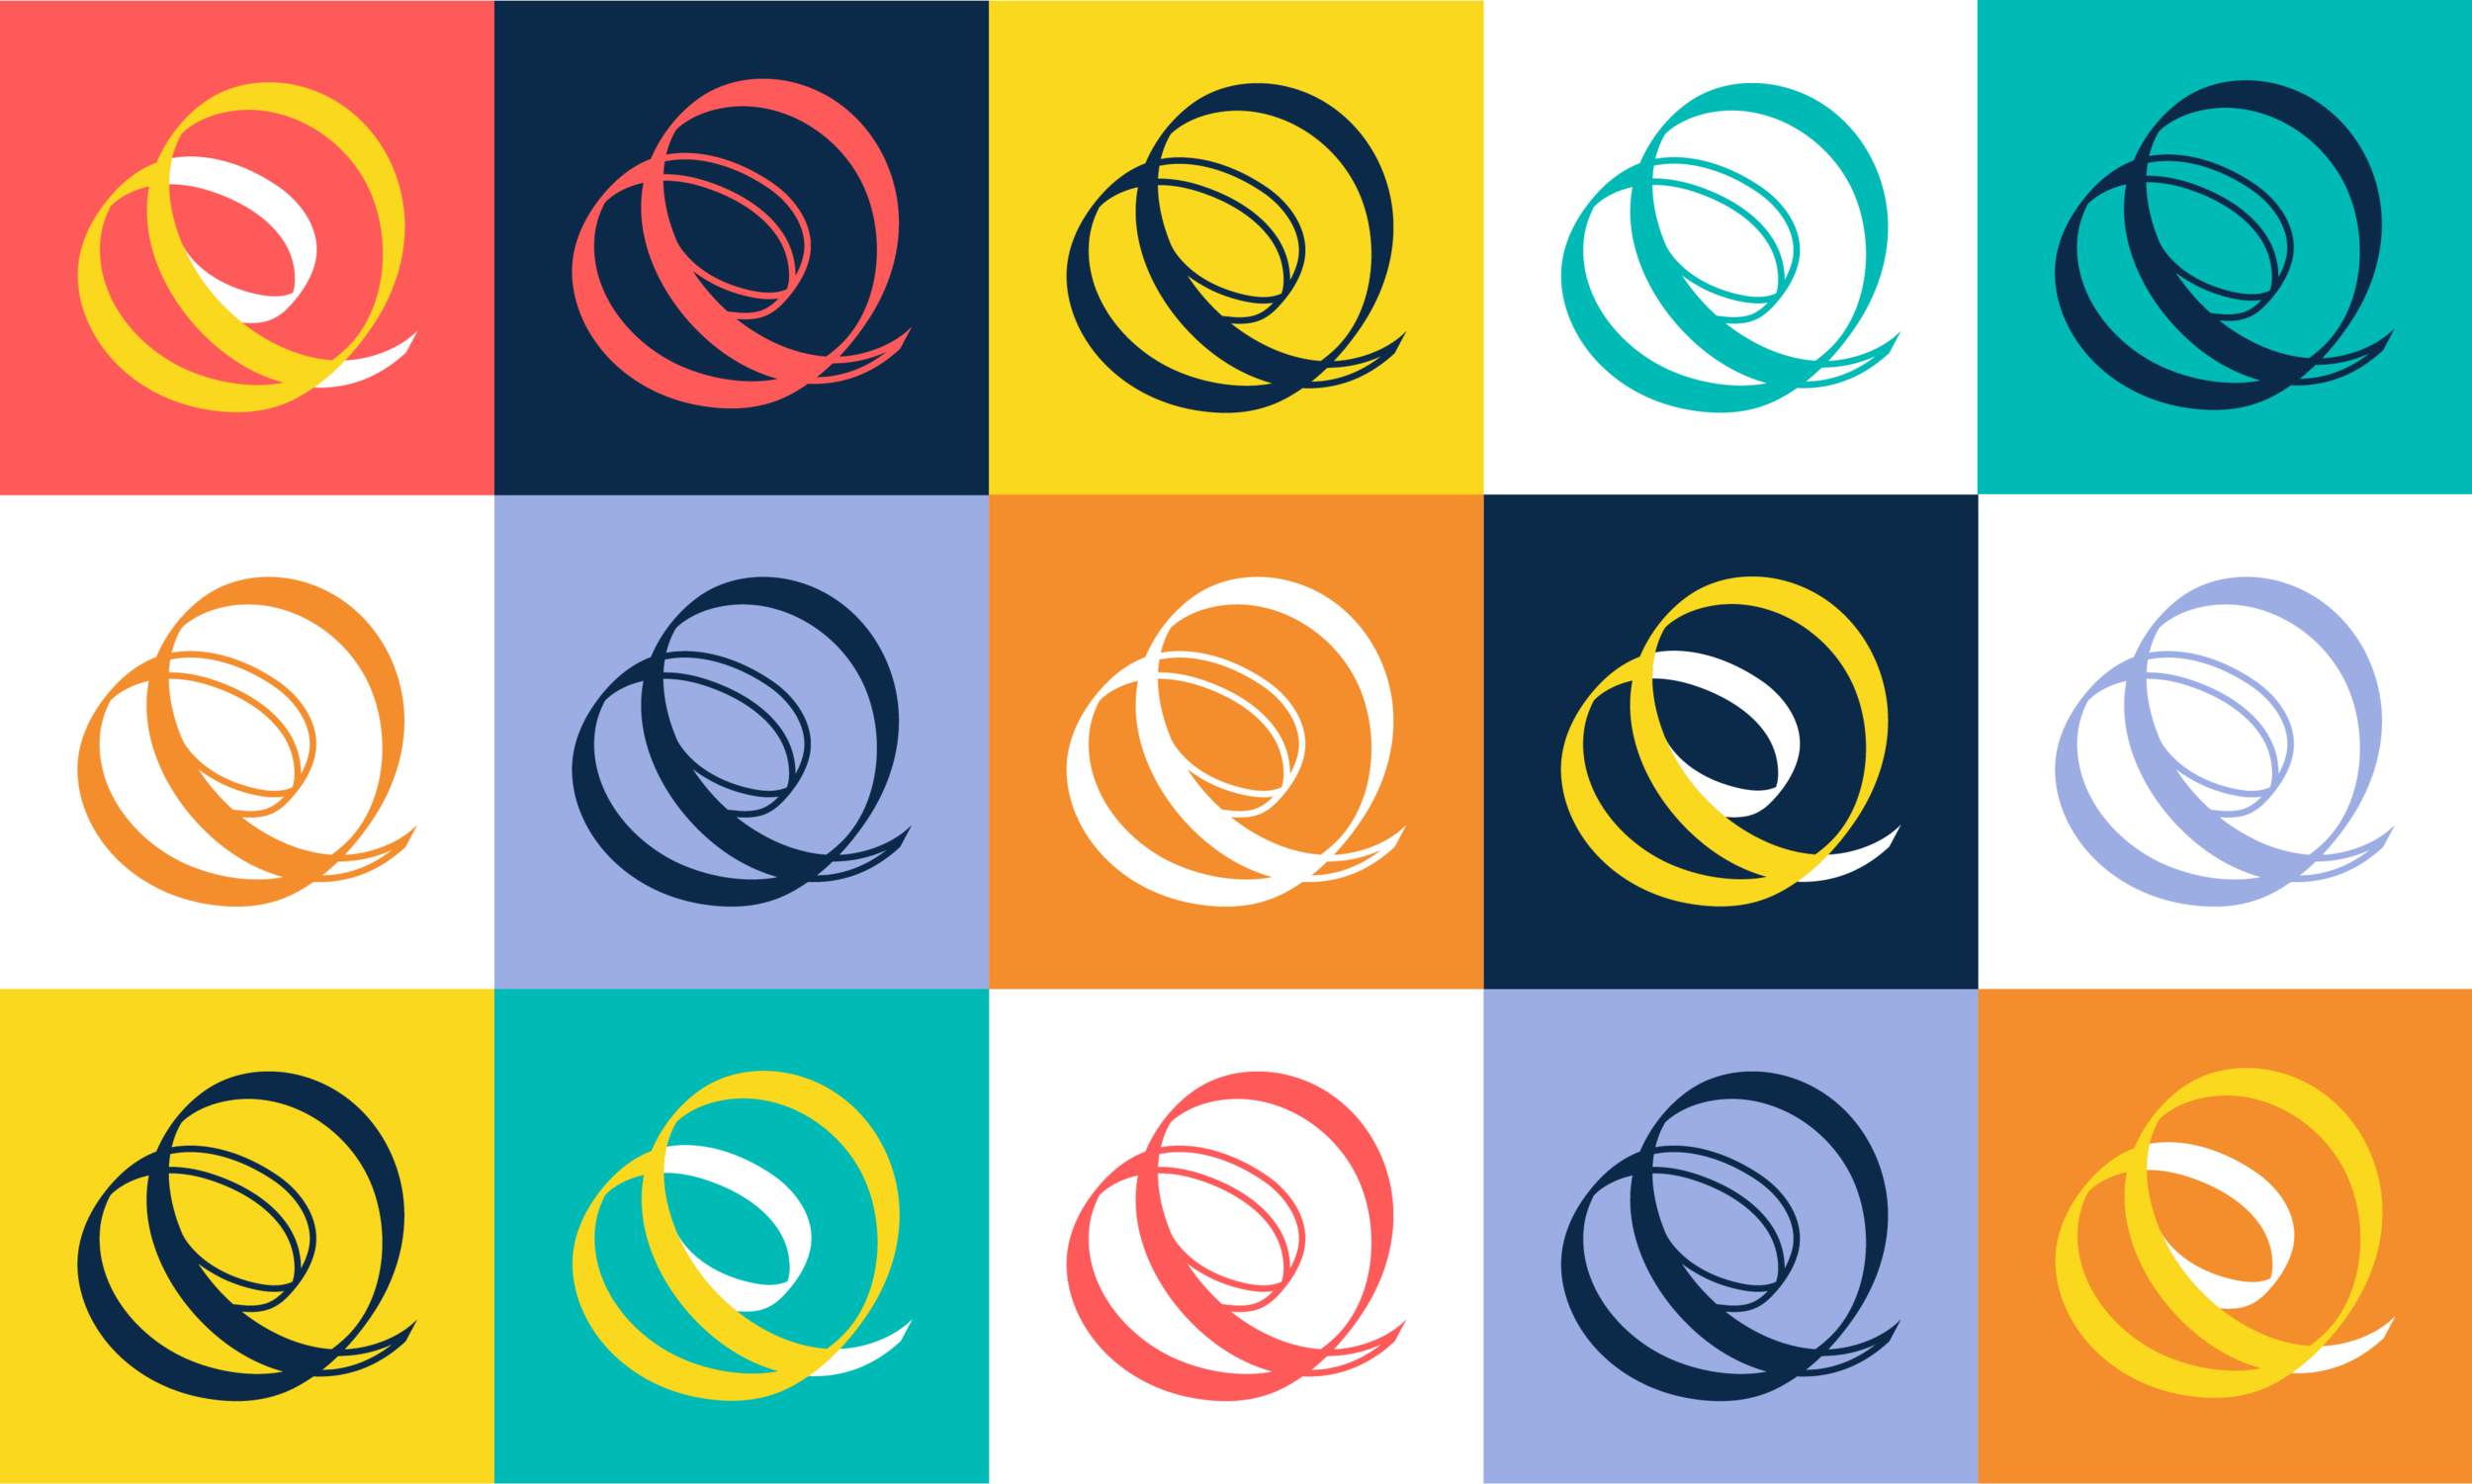 TOTC_Icons@2x.png